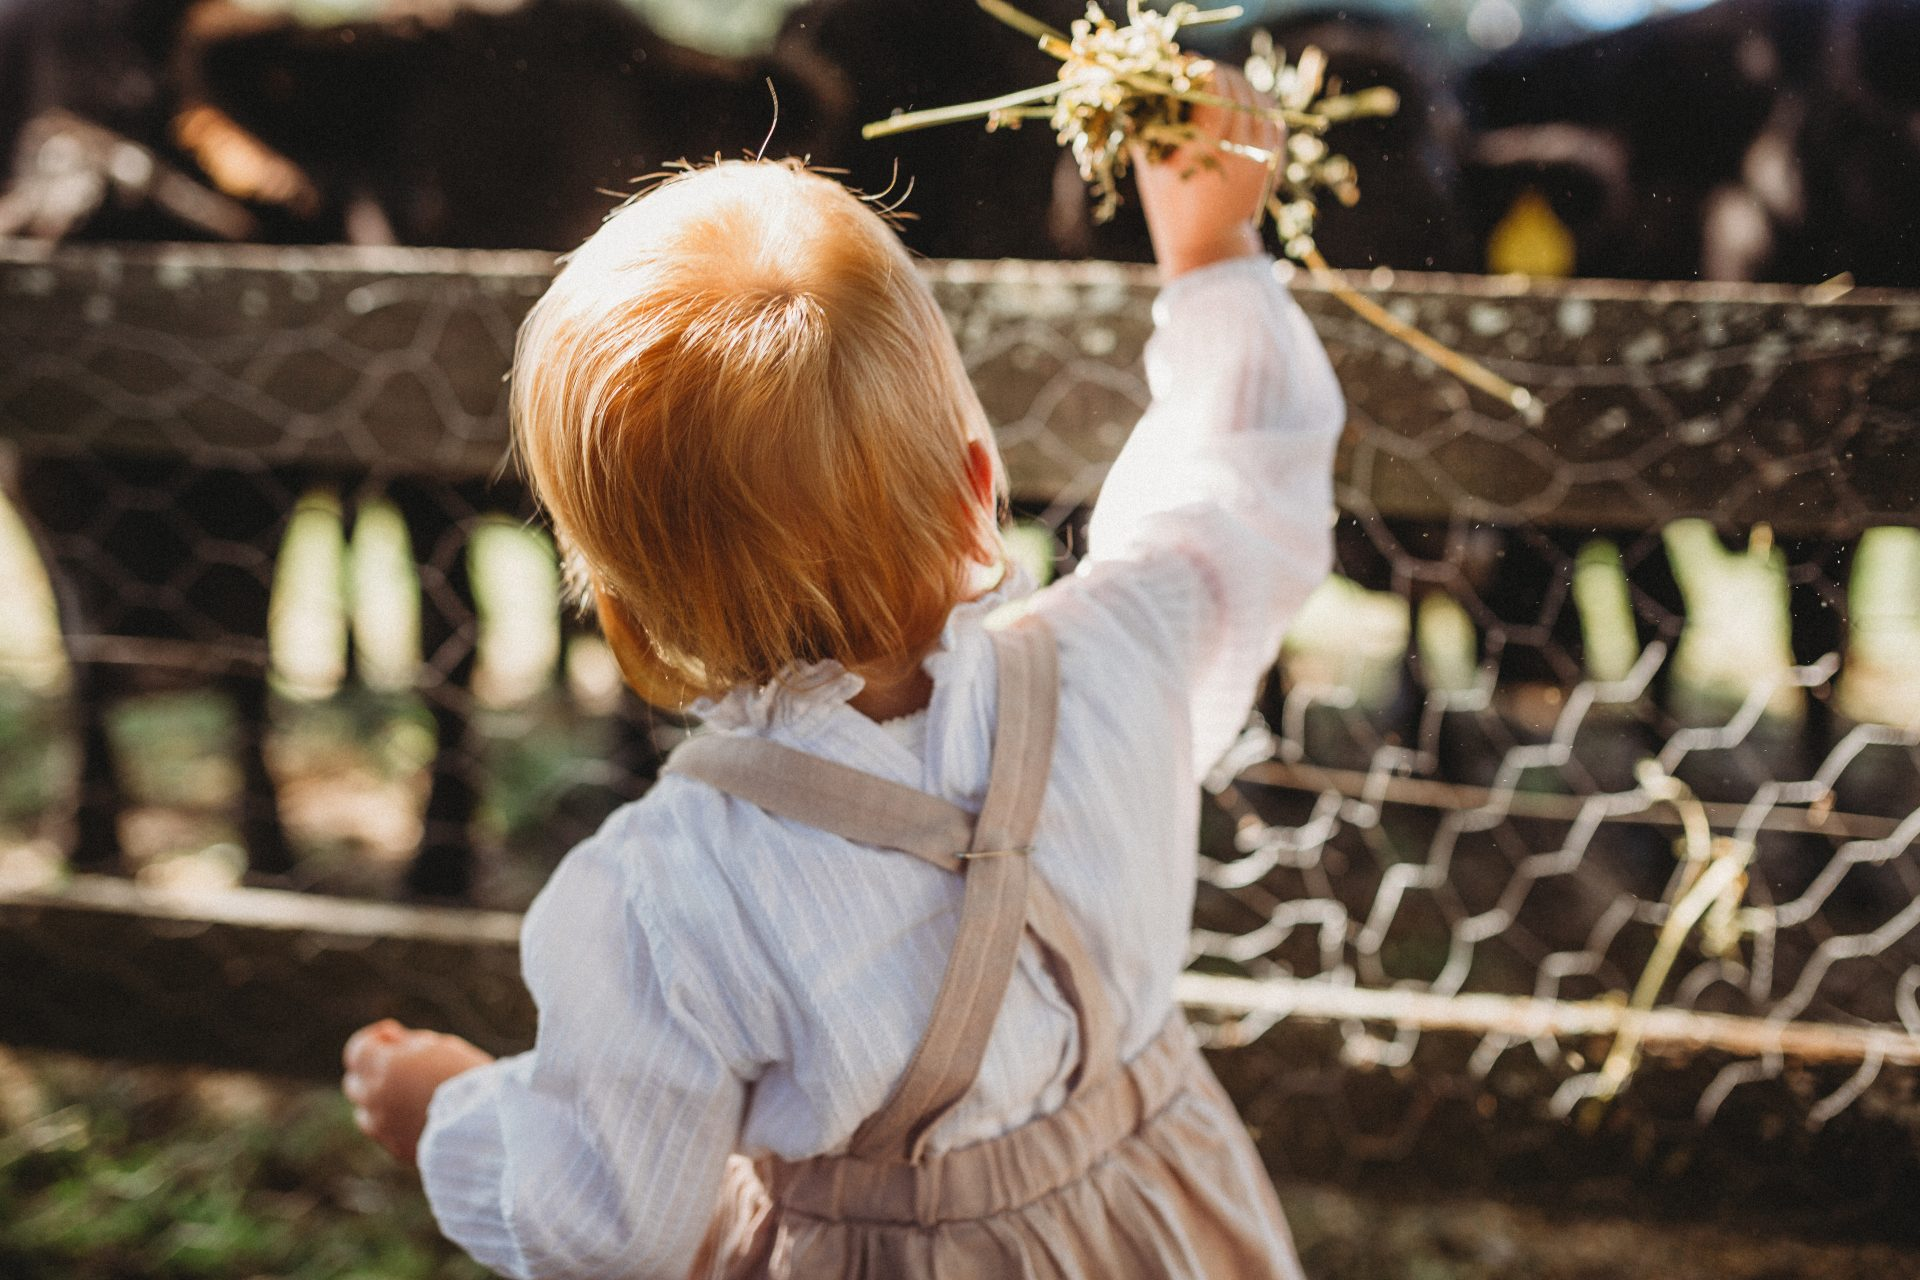 Toddler reaching up to feed cows through a fence